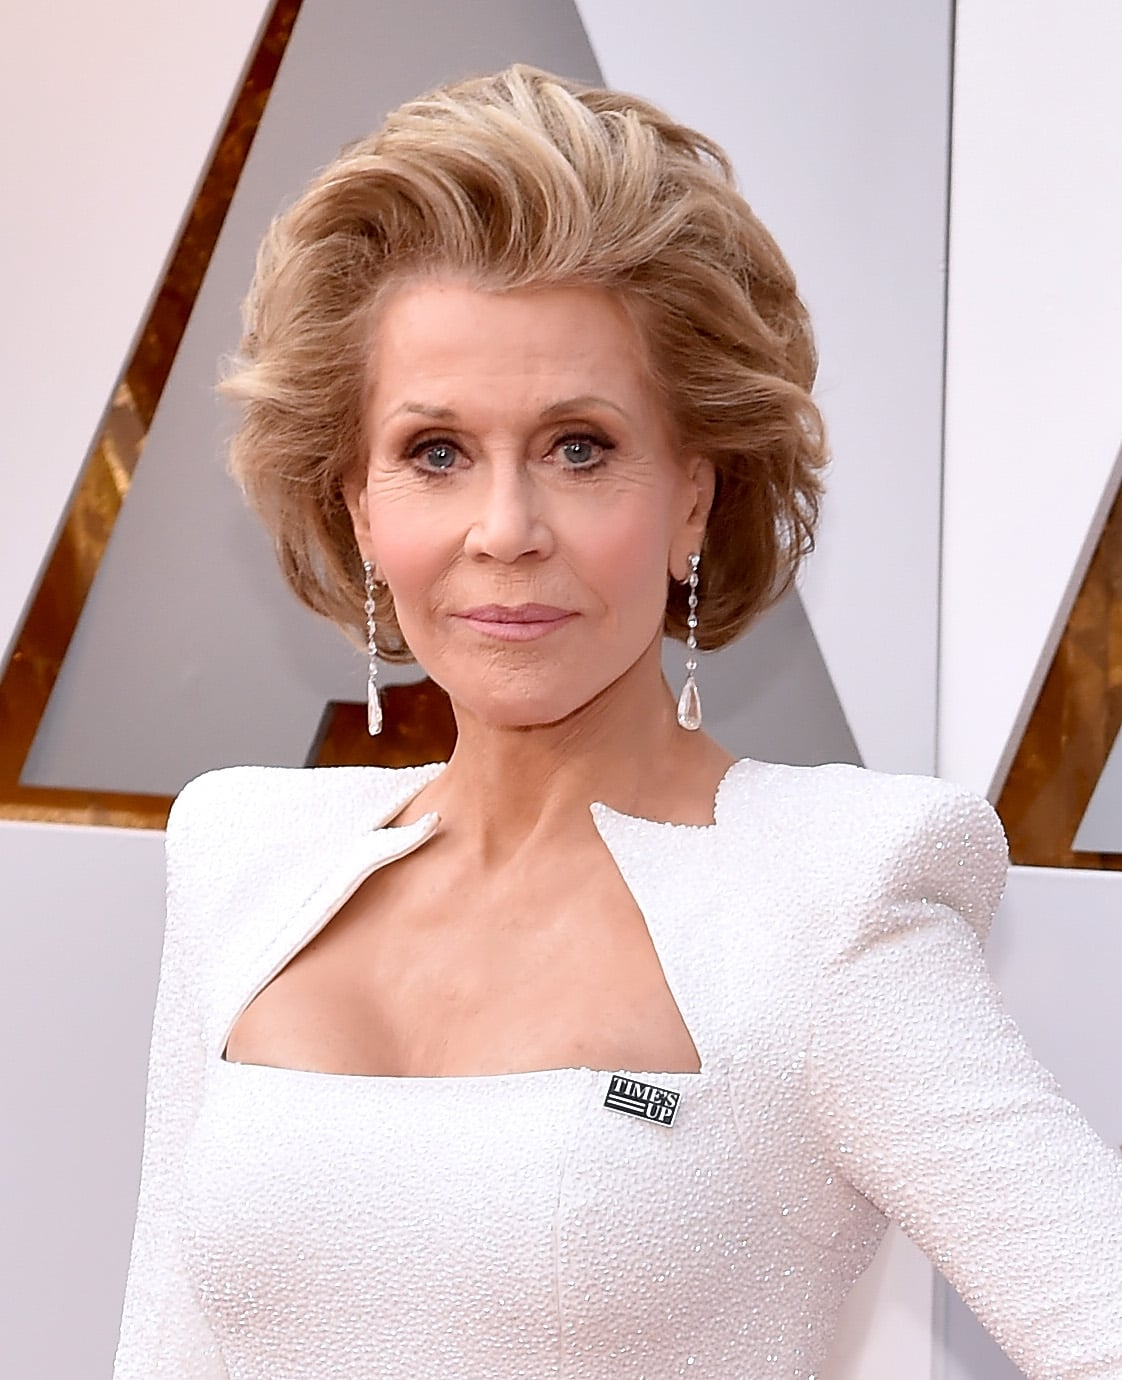 HOLLYWOOD, CA - MARCH 04:  Jane Fonda attends the 90th Annual Academy Awards at Hollywood & Highland Center on March 4, 2018 in Hollywood, California.  (Photo by Kevin Mazur/WireImage)